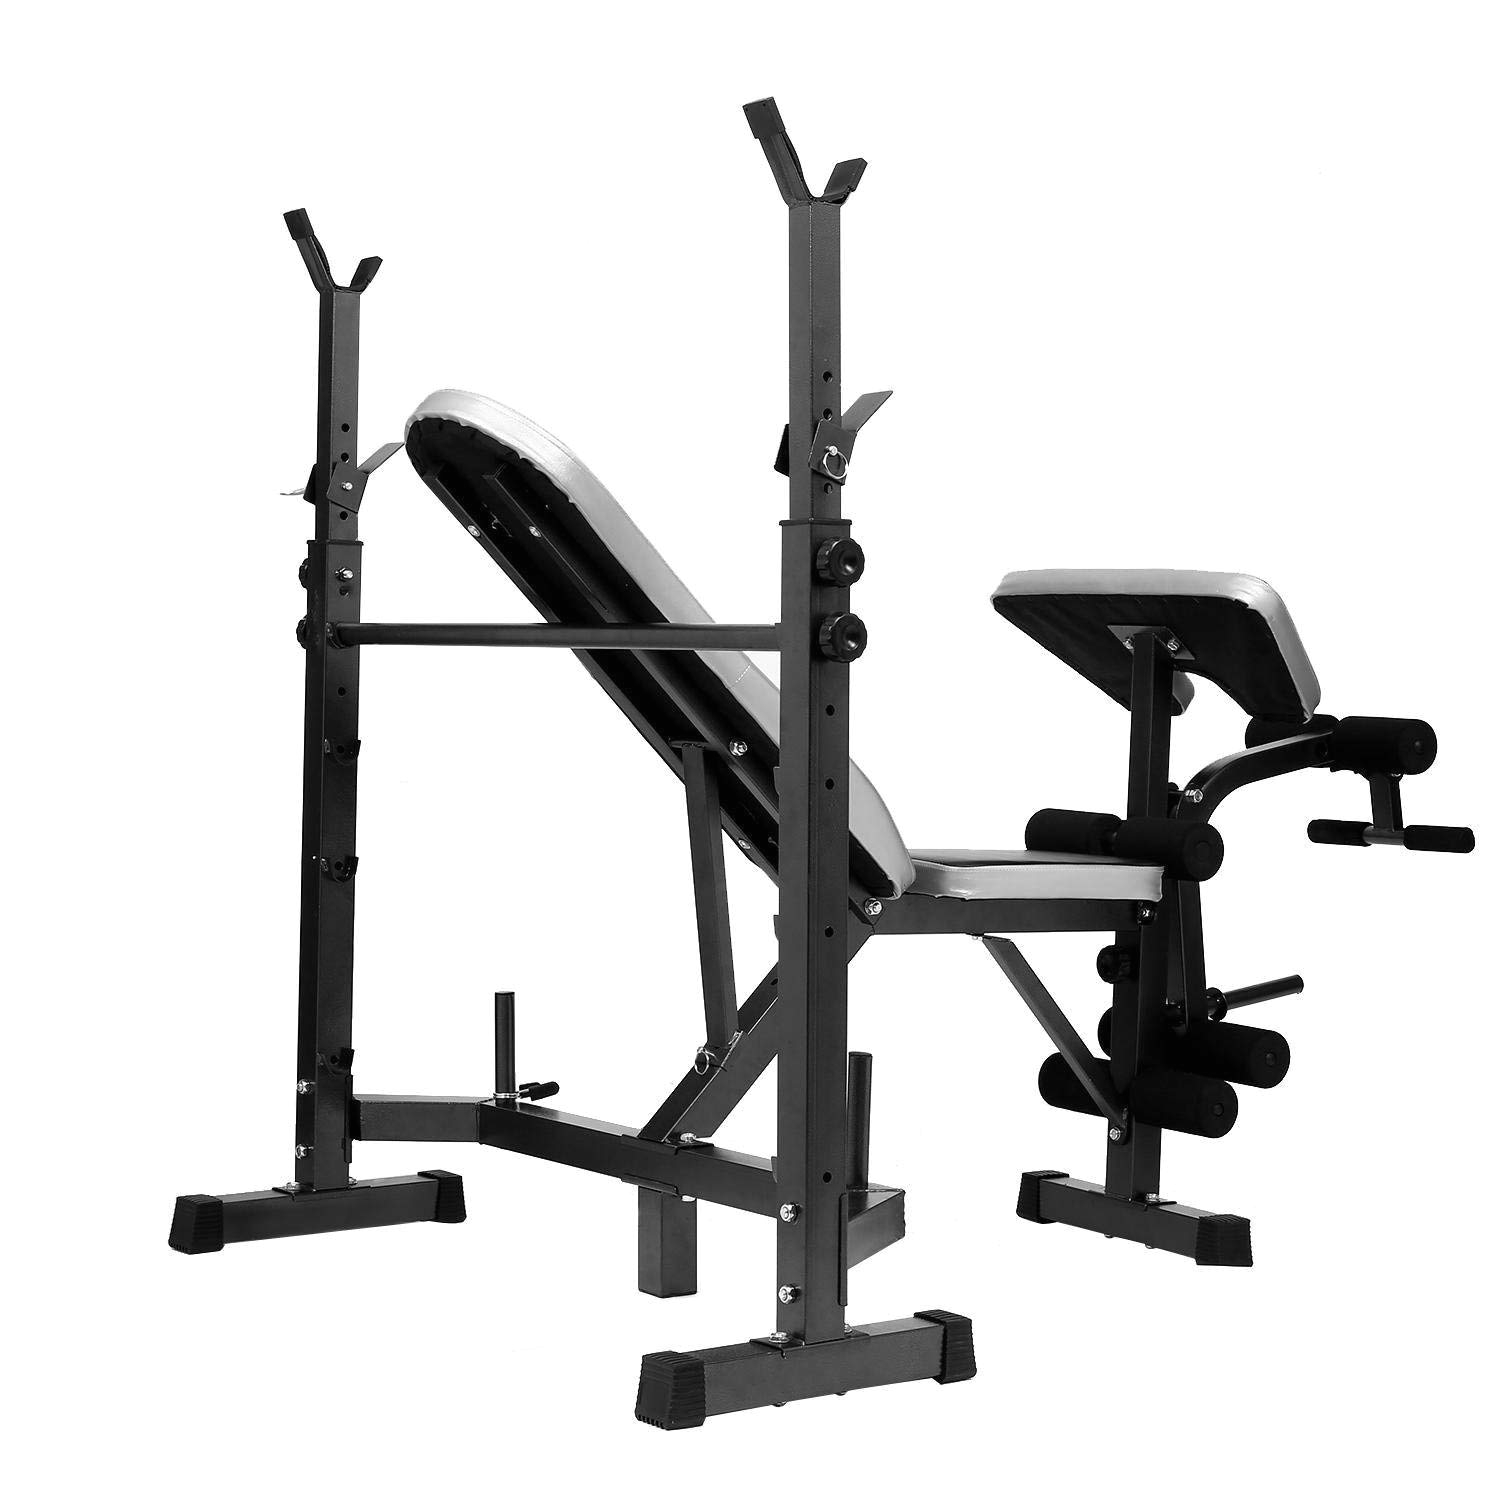 amazon com multi function olympic workout bench w adjustable squat rack robust frame bench features leg developer curl yoke preacher pad weight